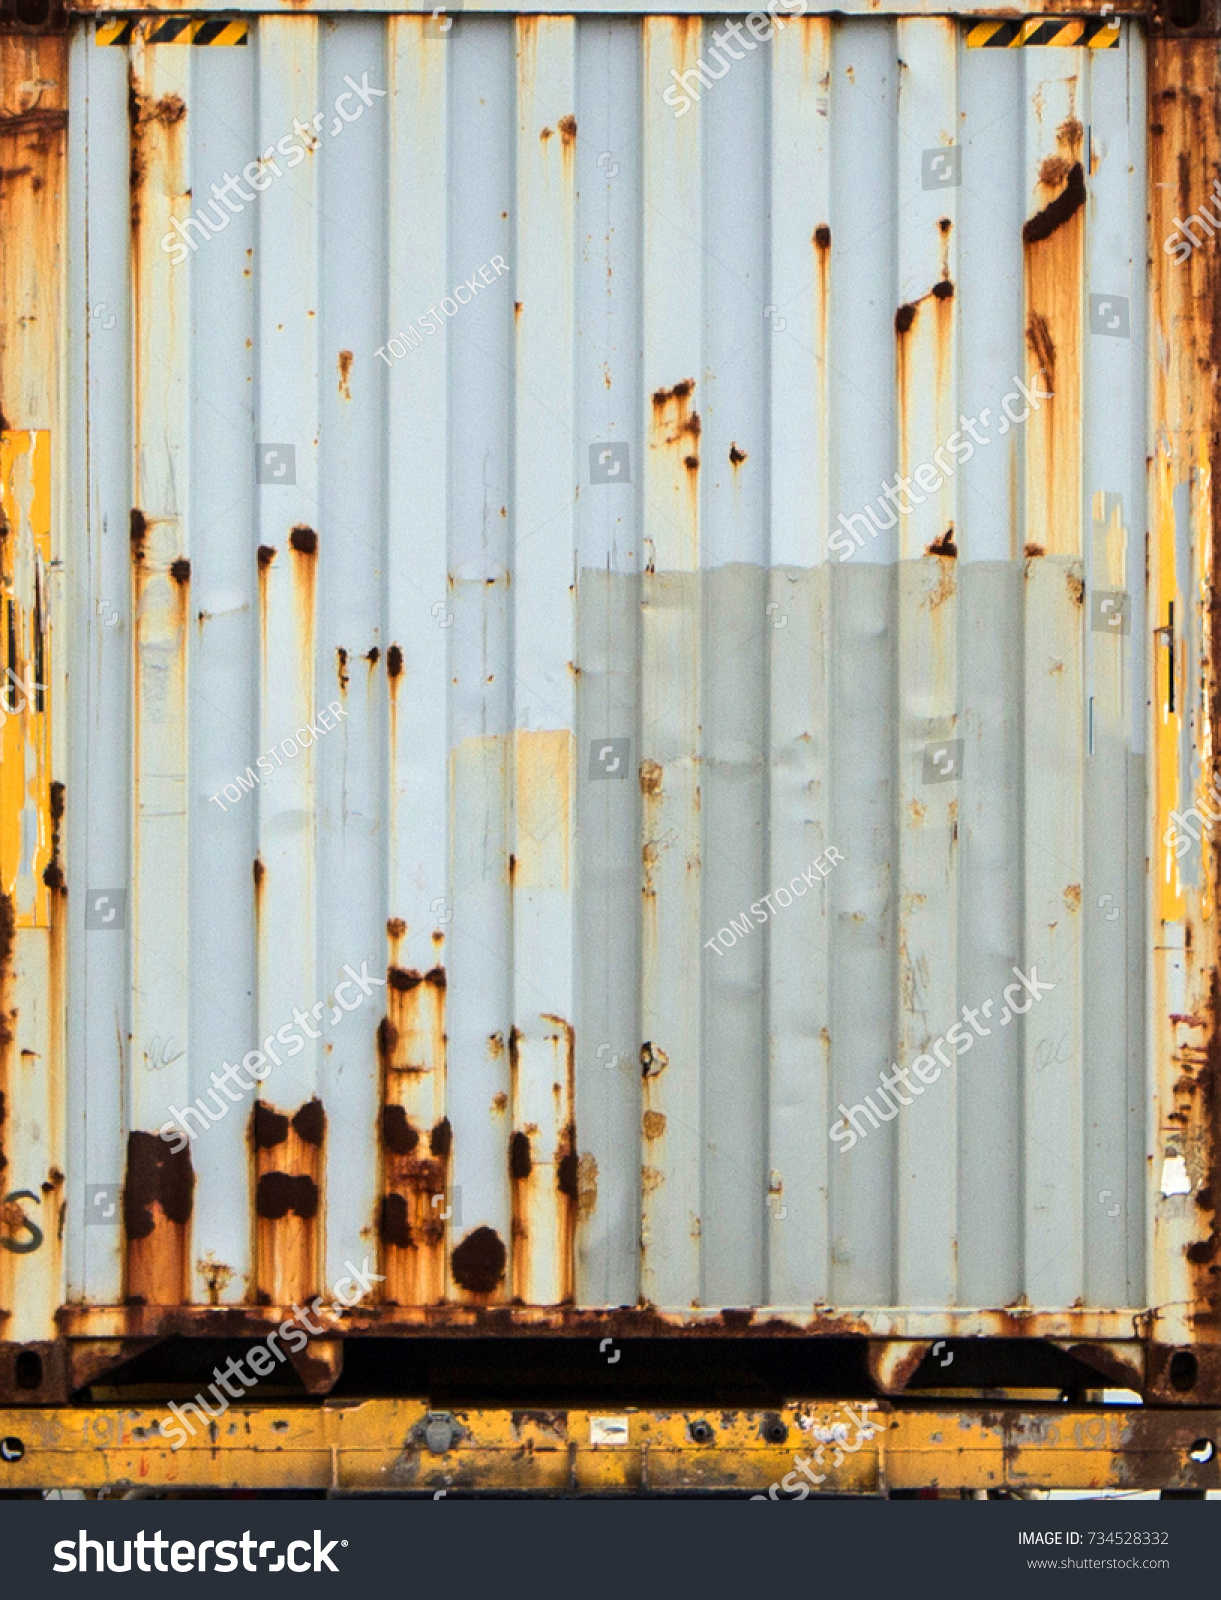 Rusty metal container photo